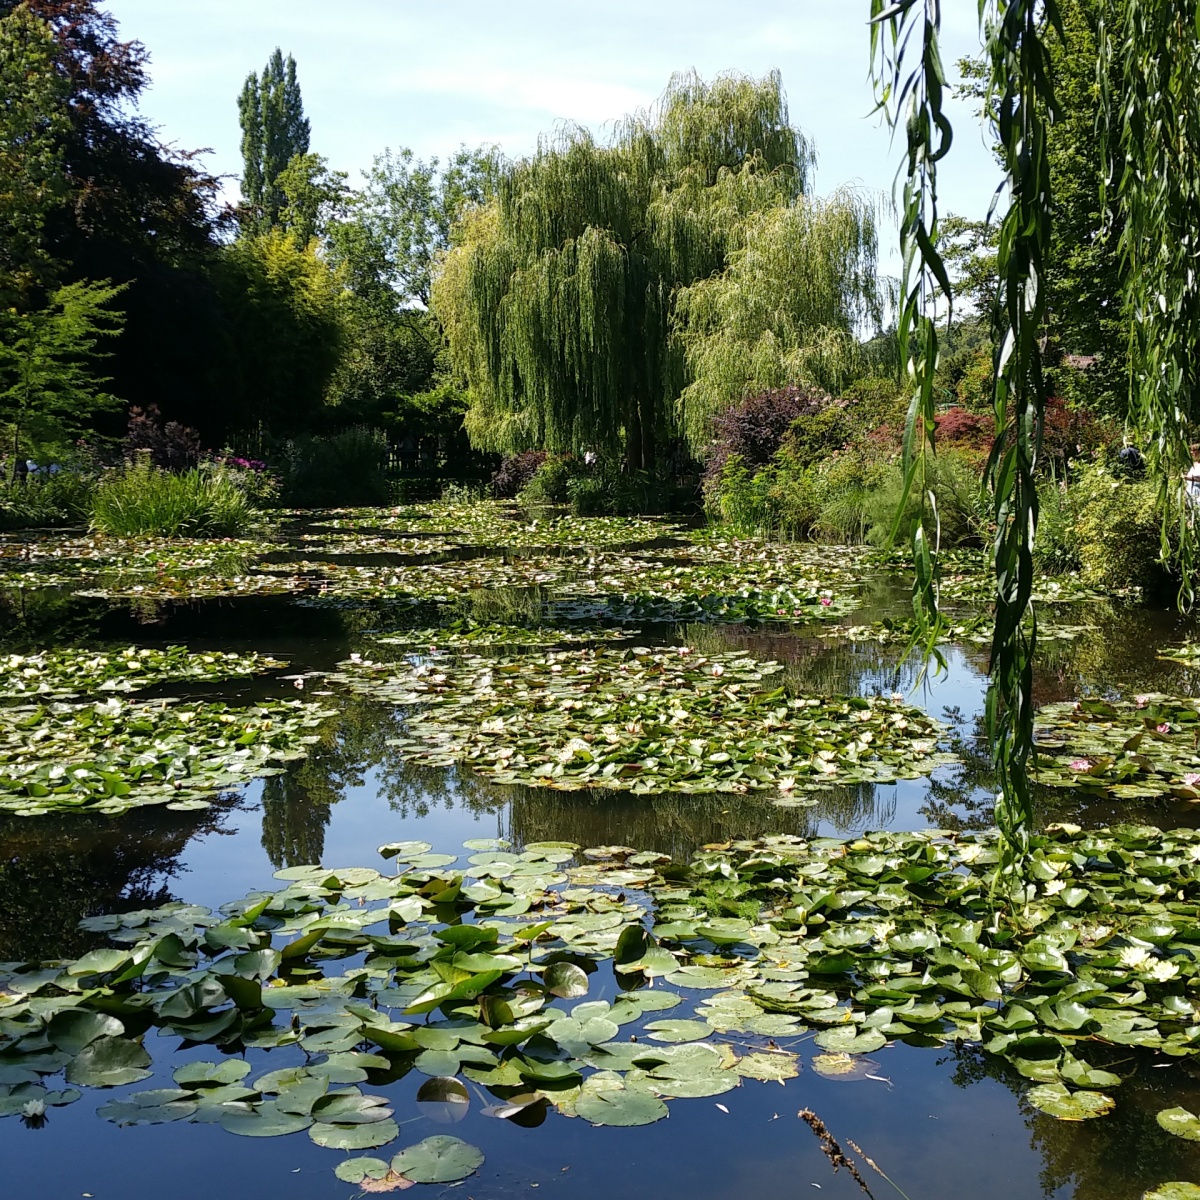 Une journ e la maison de monet giverny et ses c l bres for Jardines monet